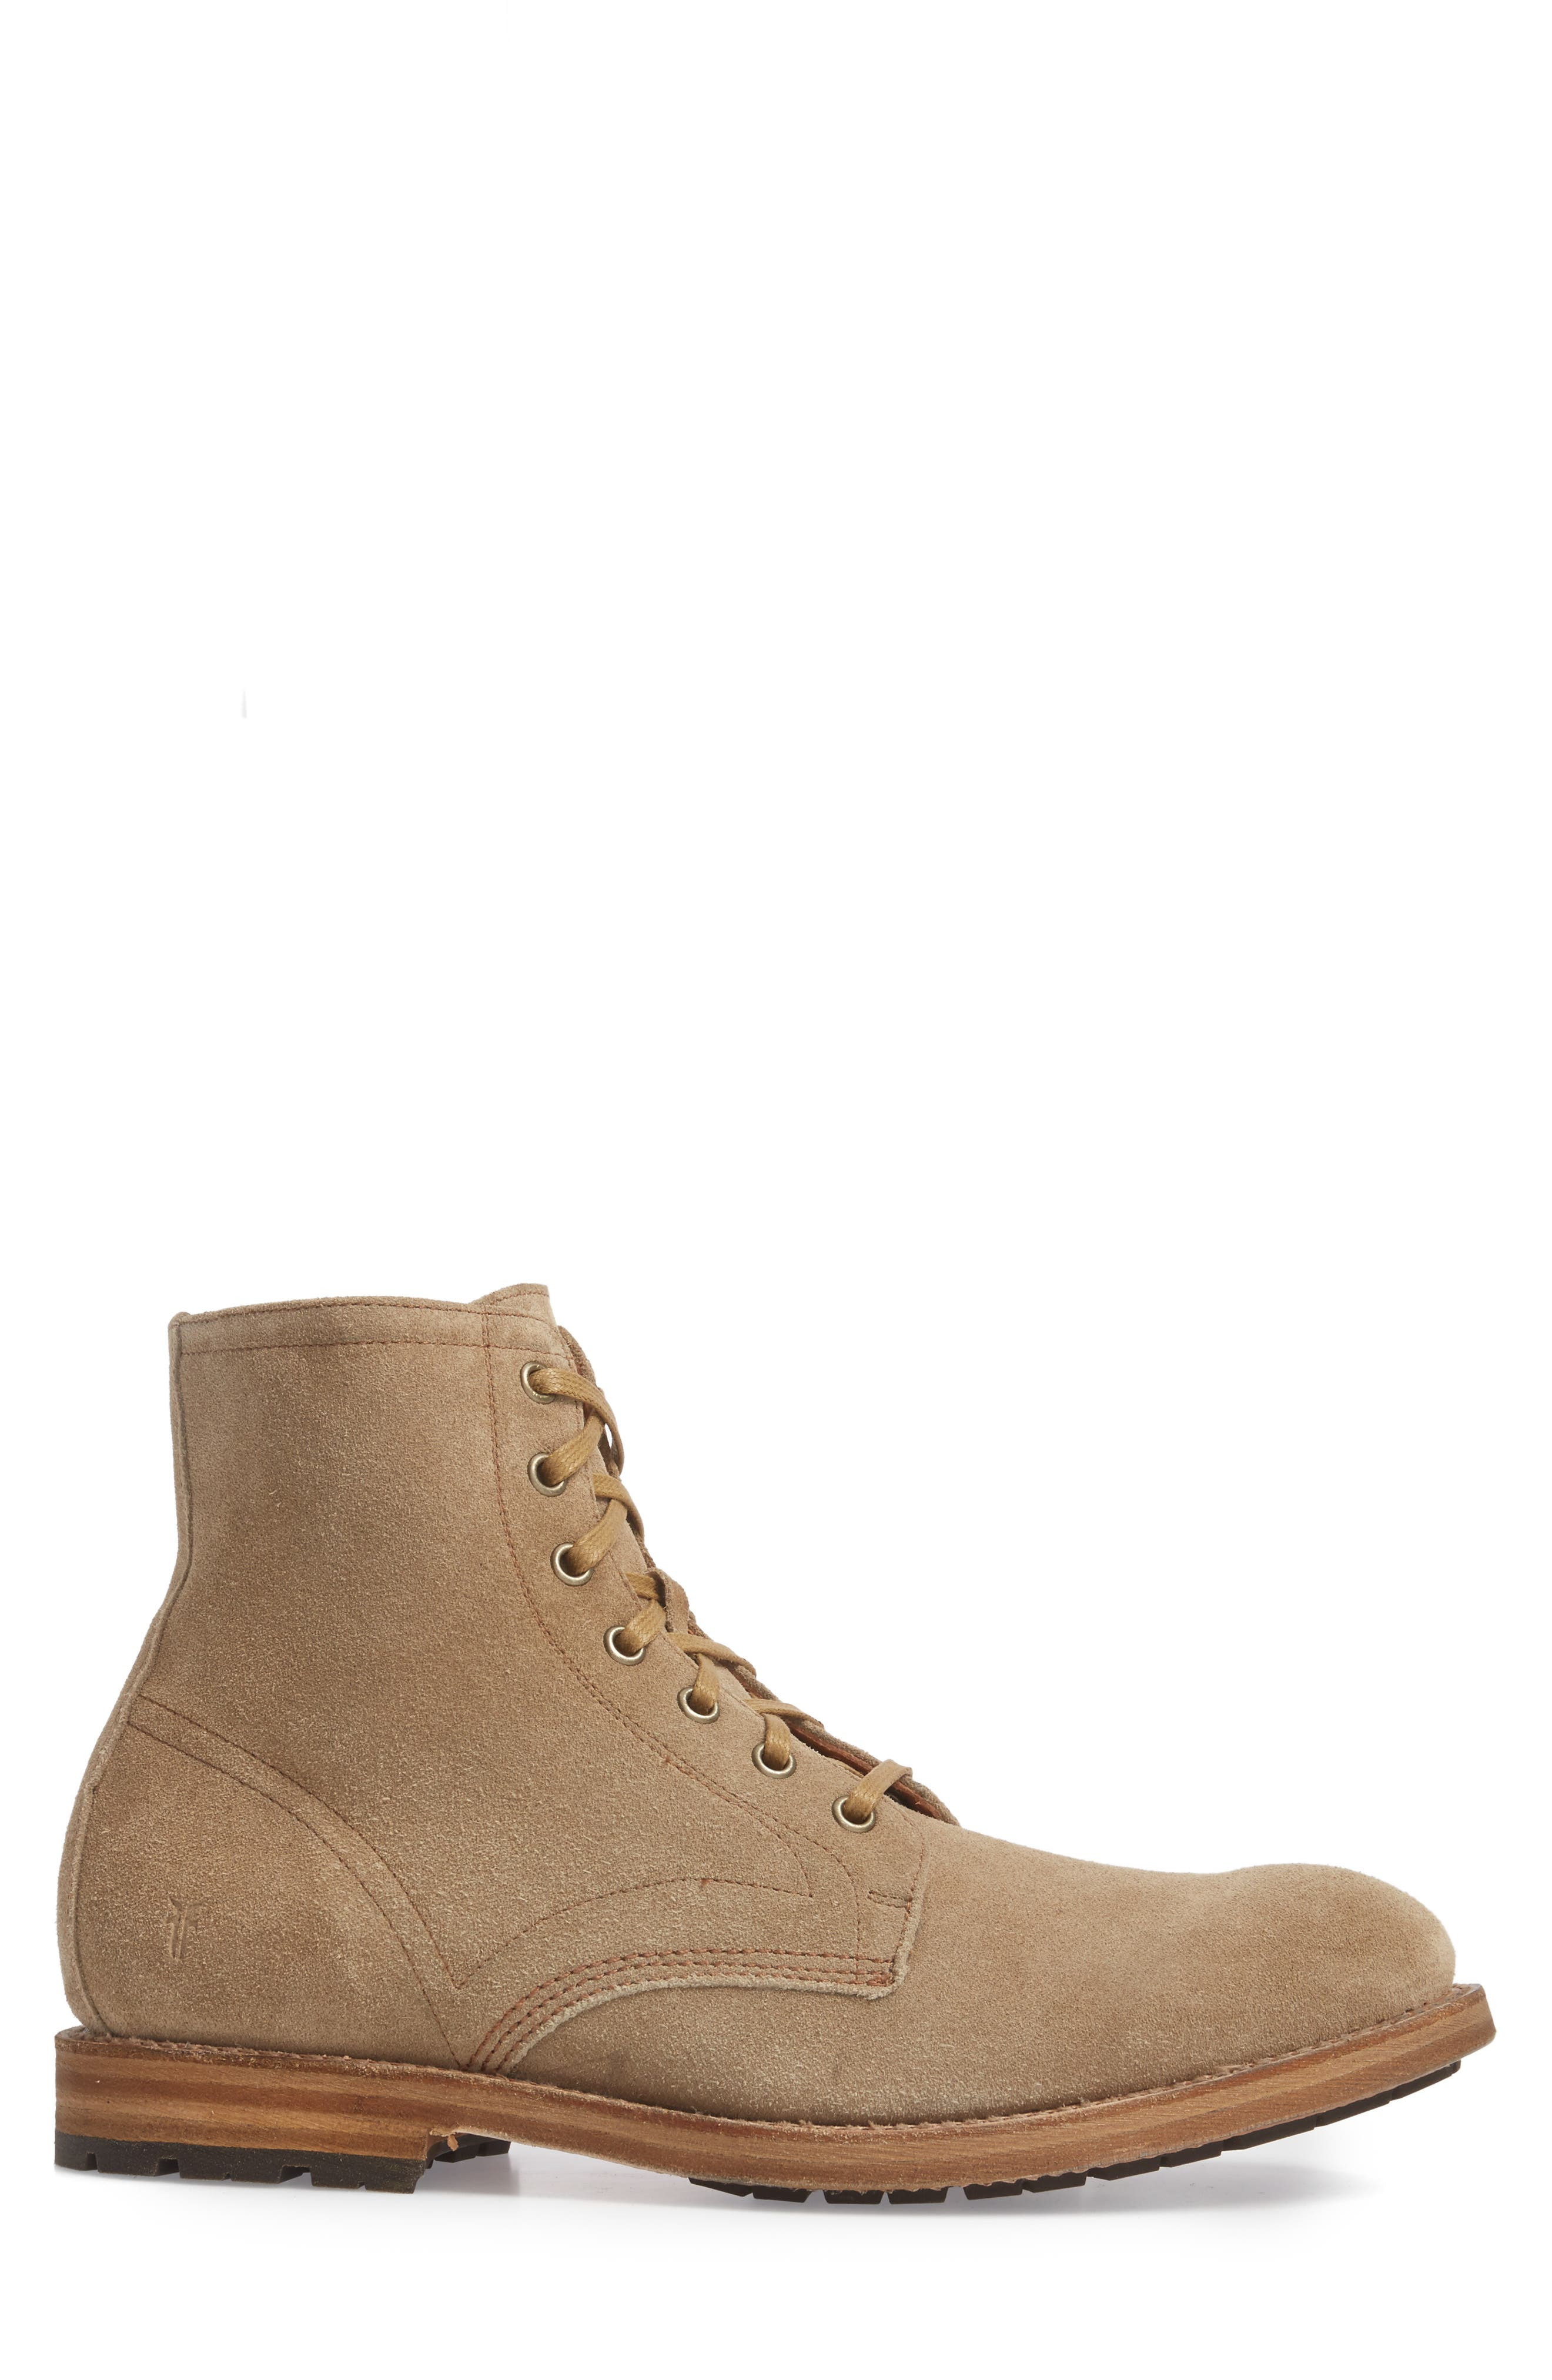 Fry Bowery Side Zip Combat Boot,                             Alternate thumbnail 3, color,                             250